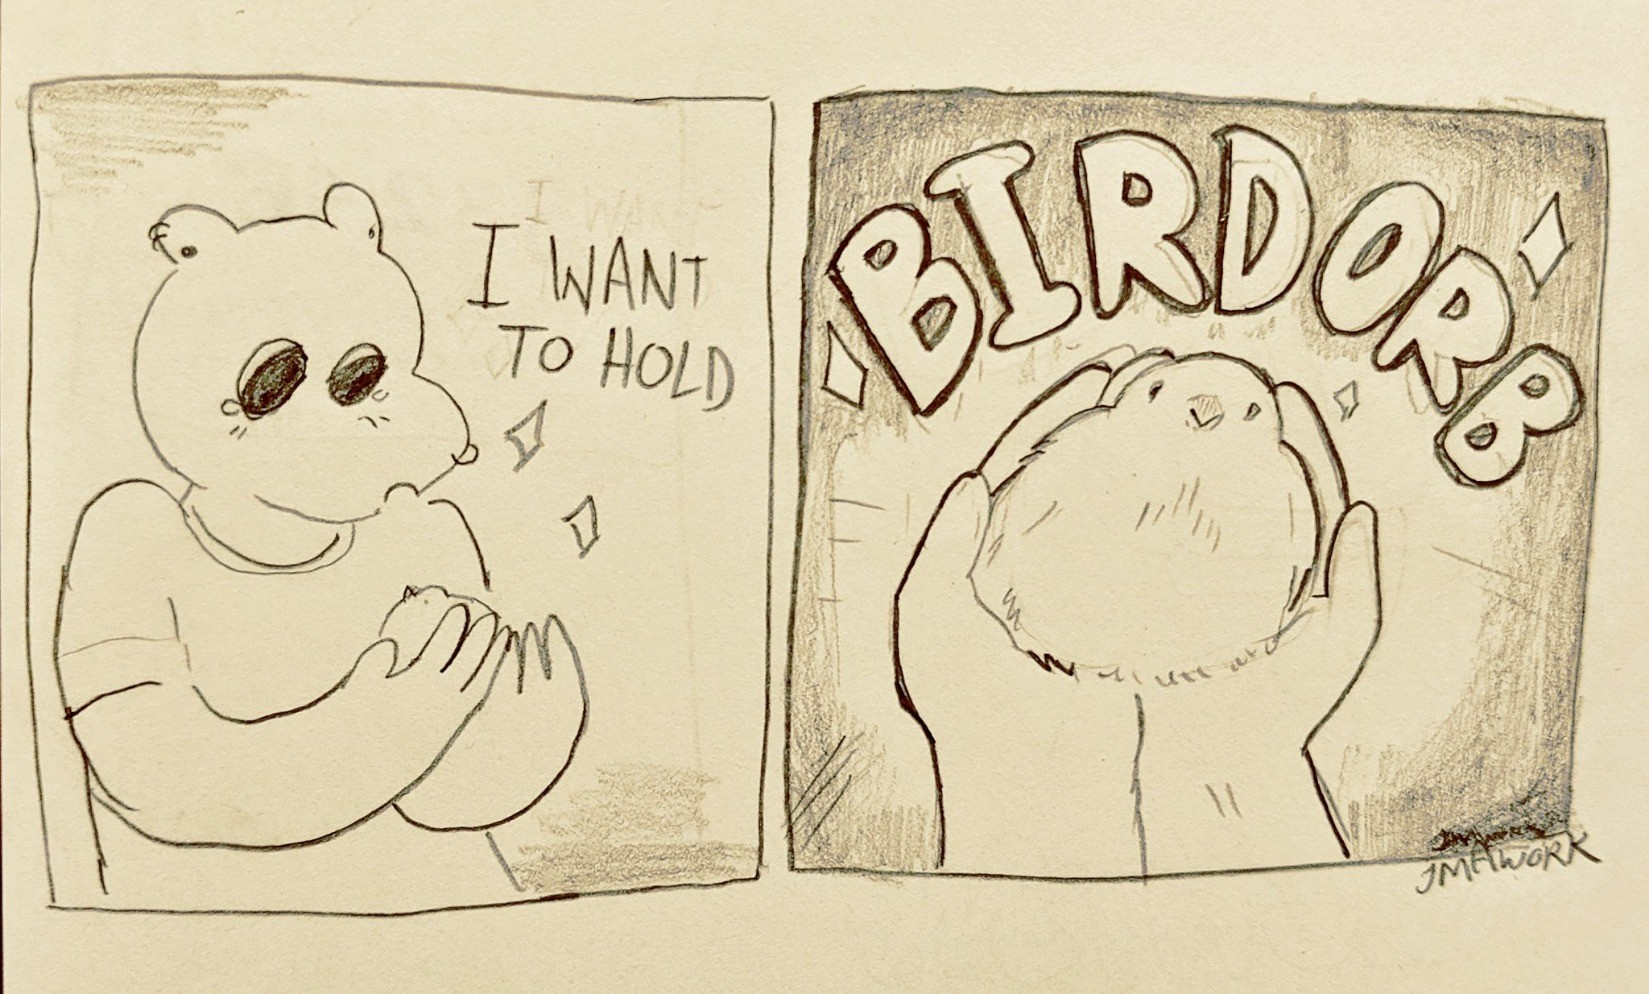 """A comic. First panel: A soft round character is looking at their cupped hands. Text: """"I want to hold.."""" Second panel: Close up of the cupped hands, holding a very round bird. Text: BIRD ORB"""